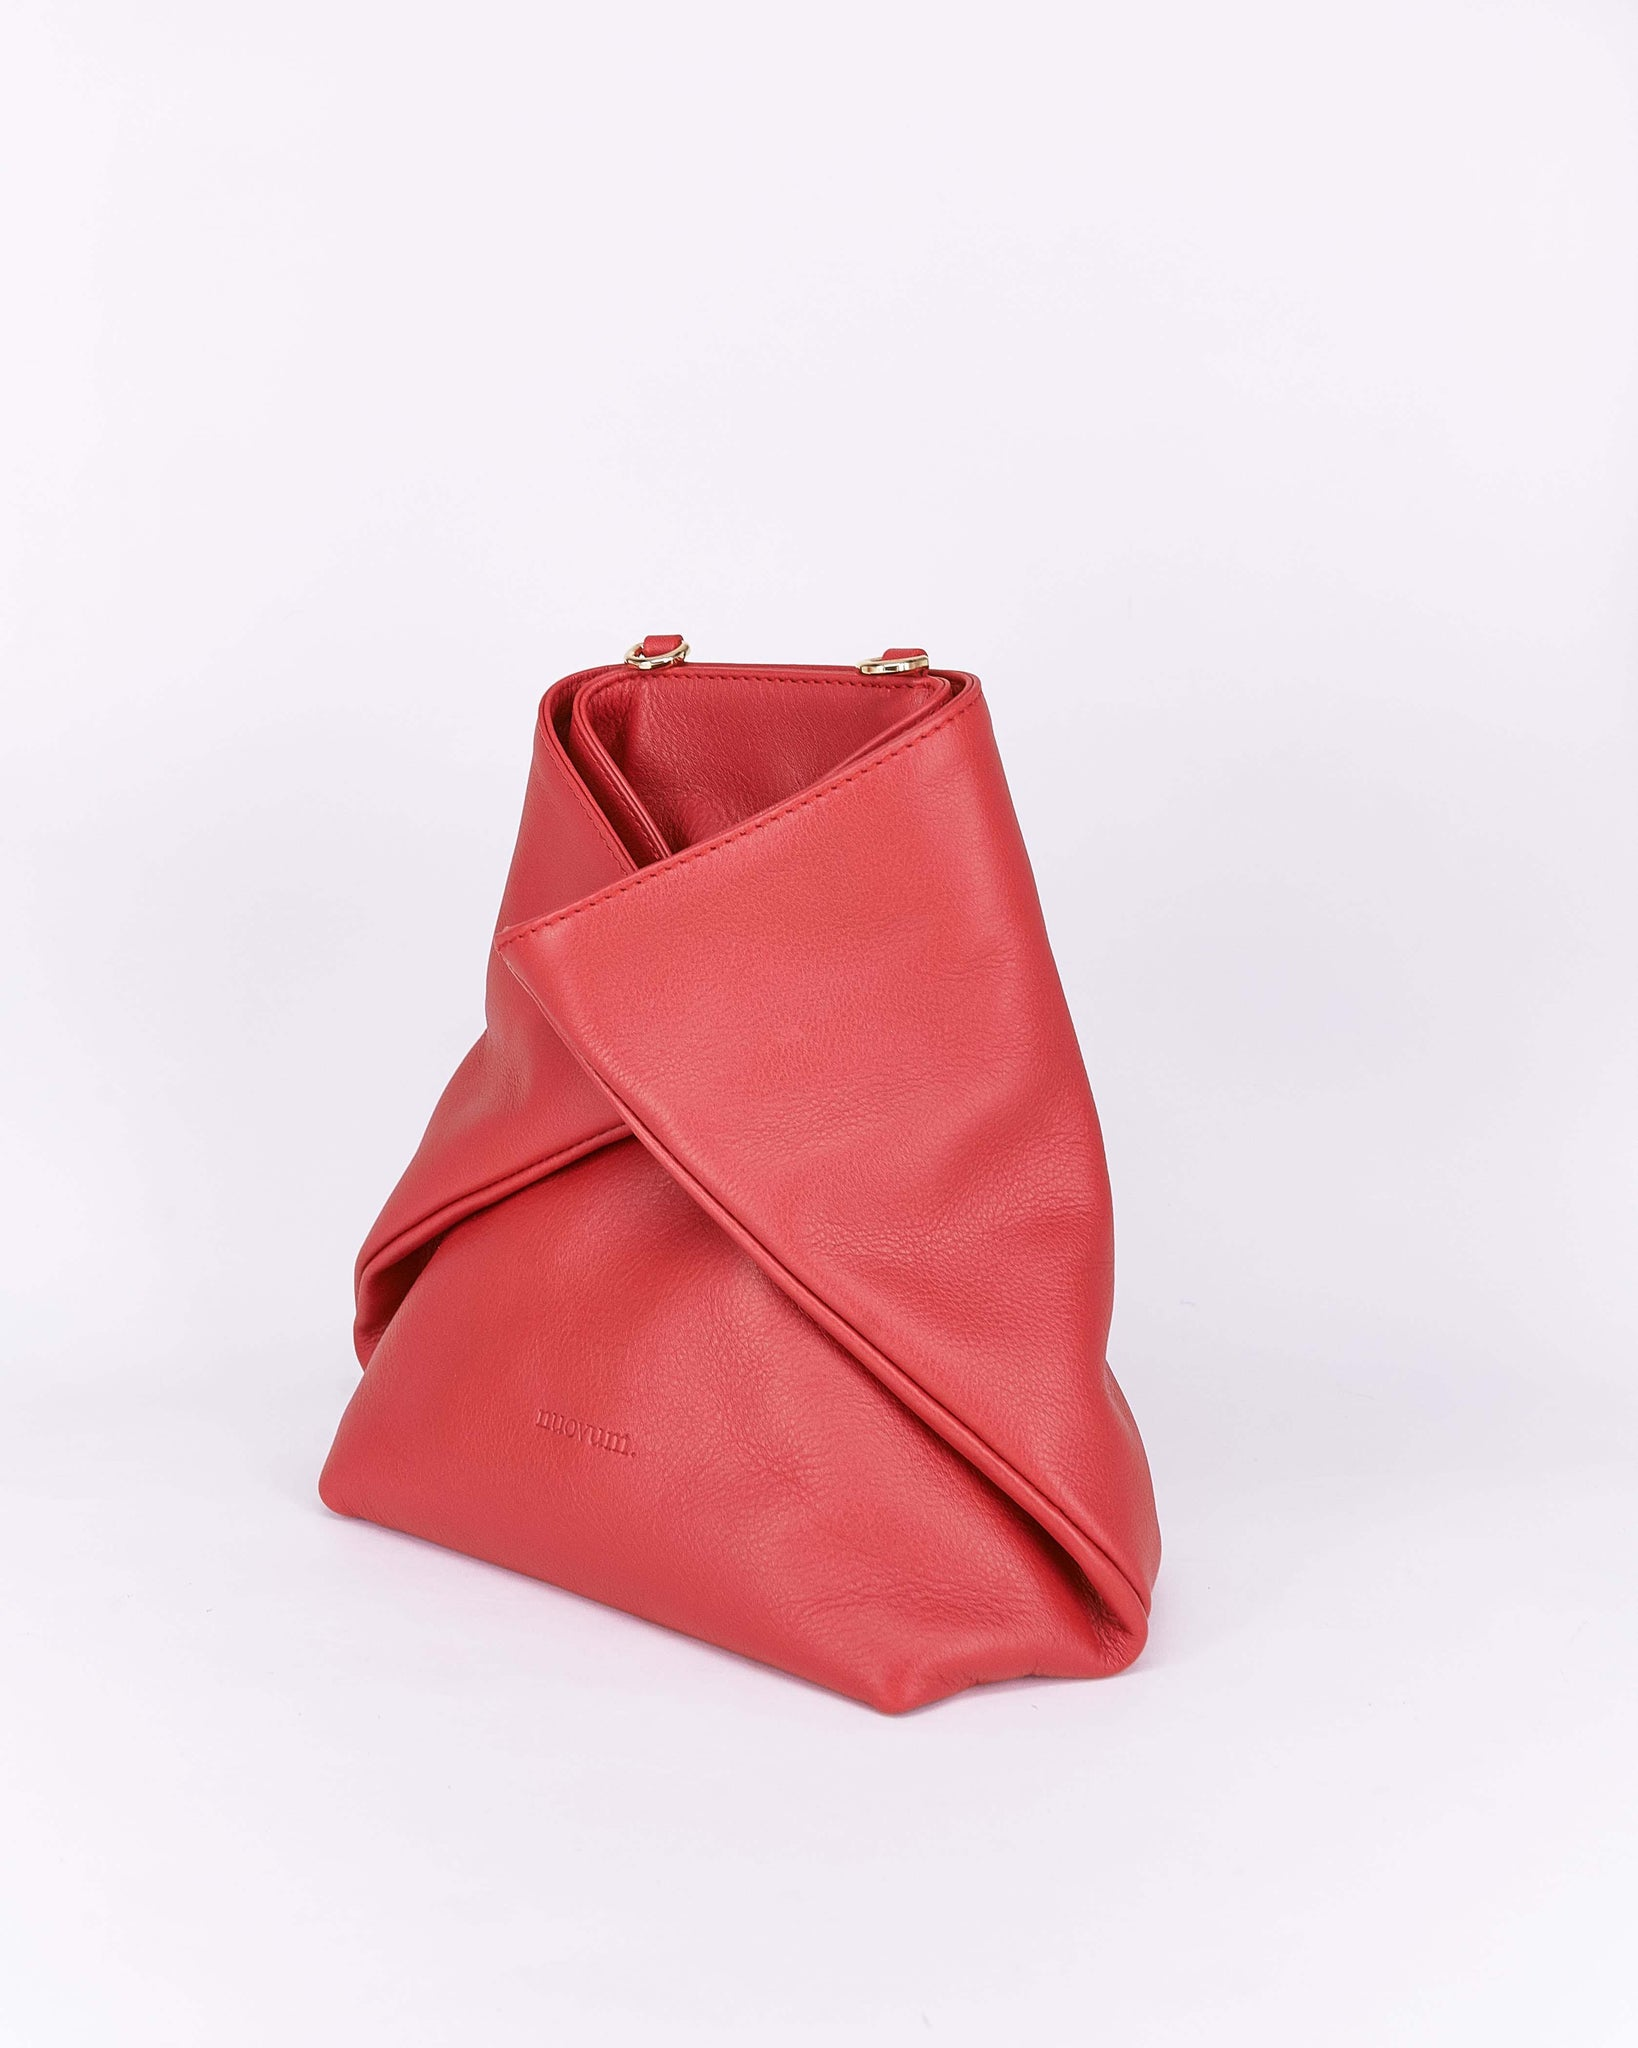 Bigcandy-Red-Side-Leather-Bag-Nuovum-Localdesigners-Handmade-Madeinbarcelona